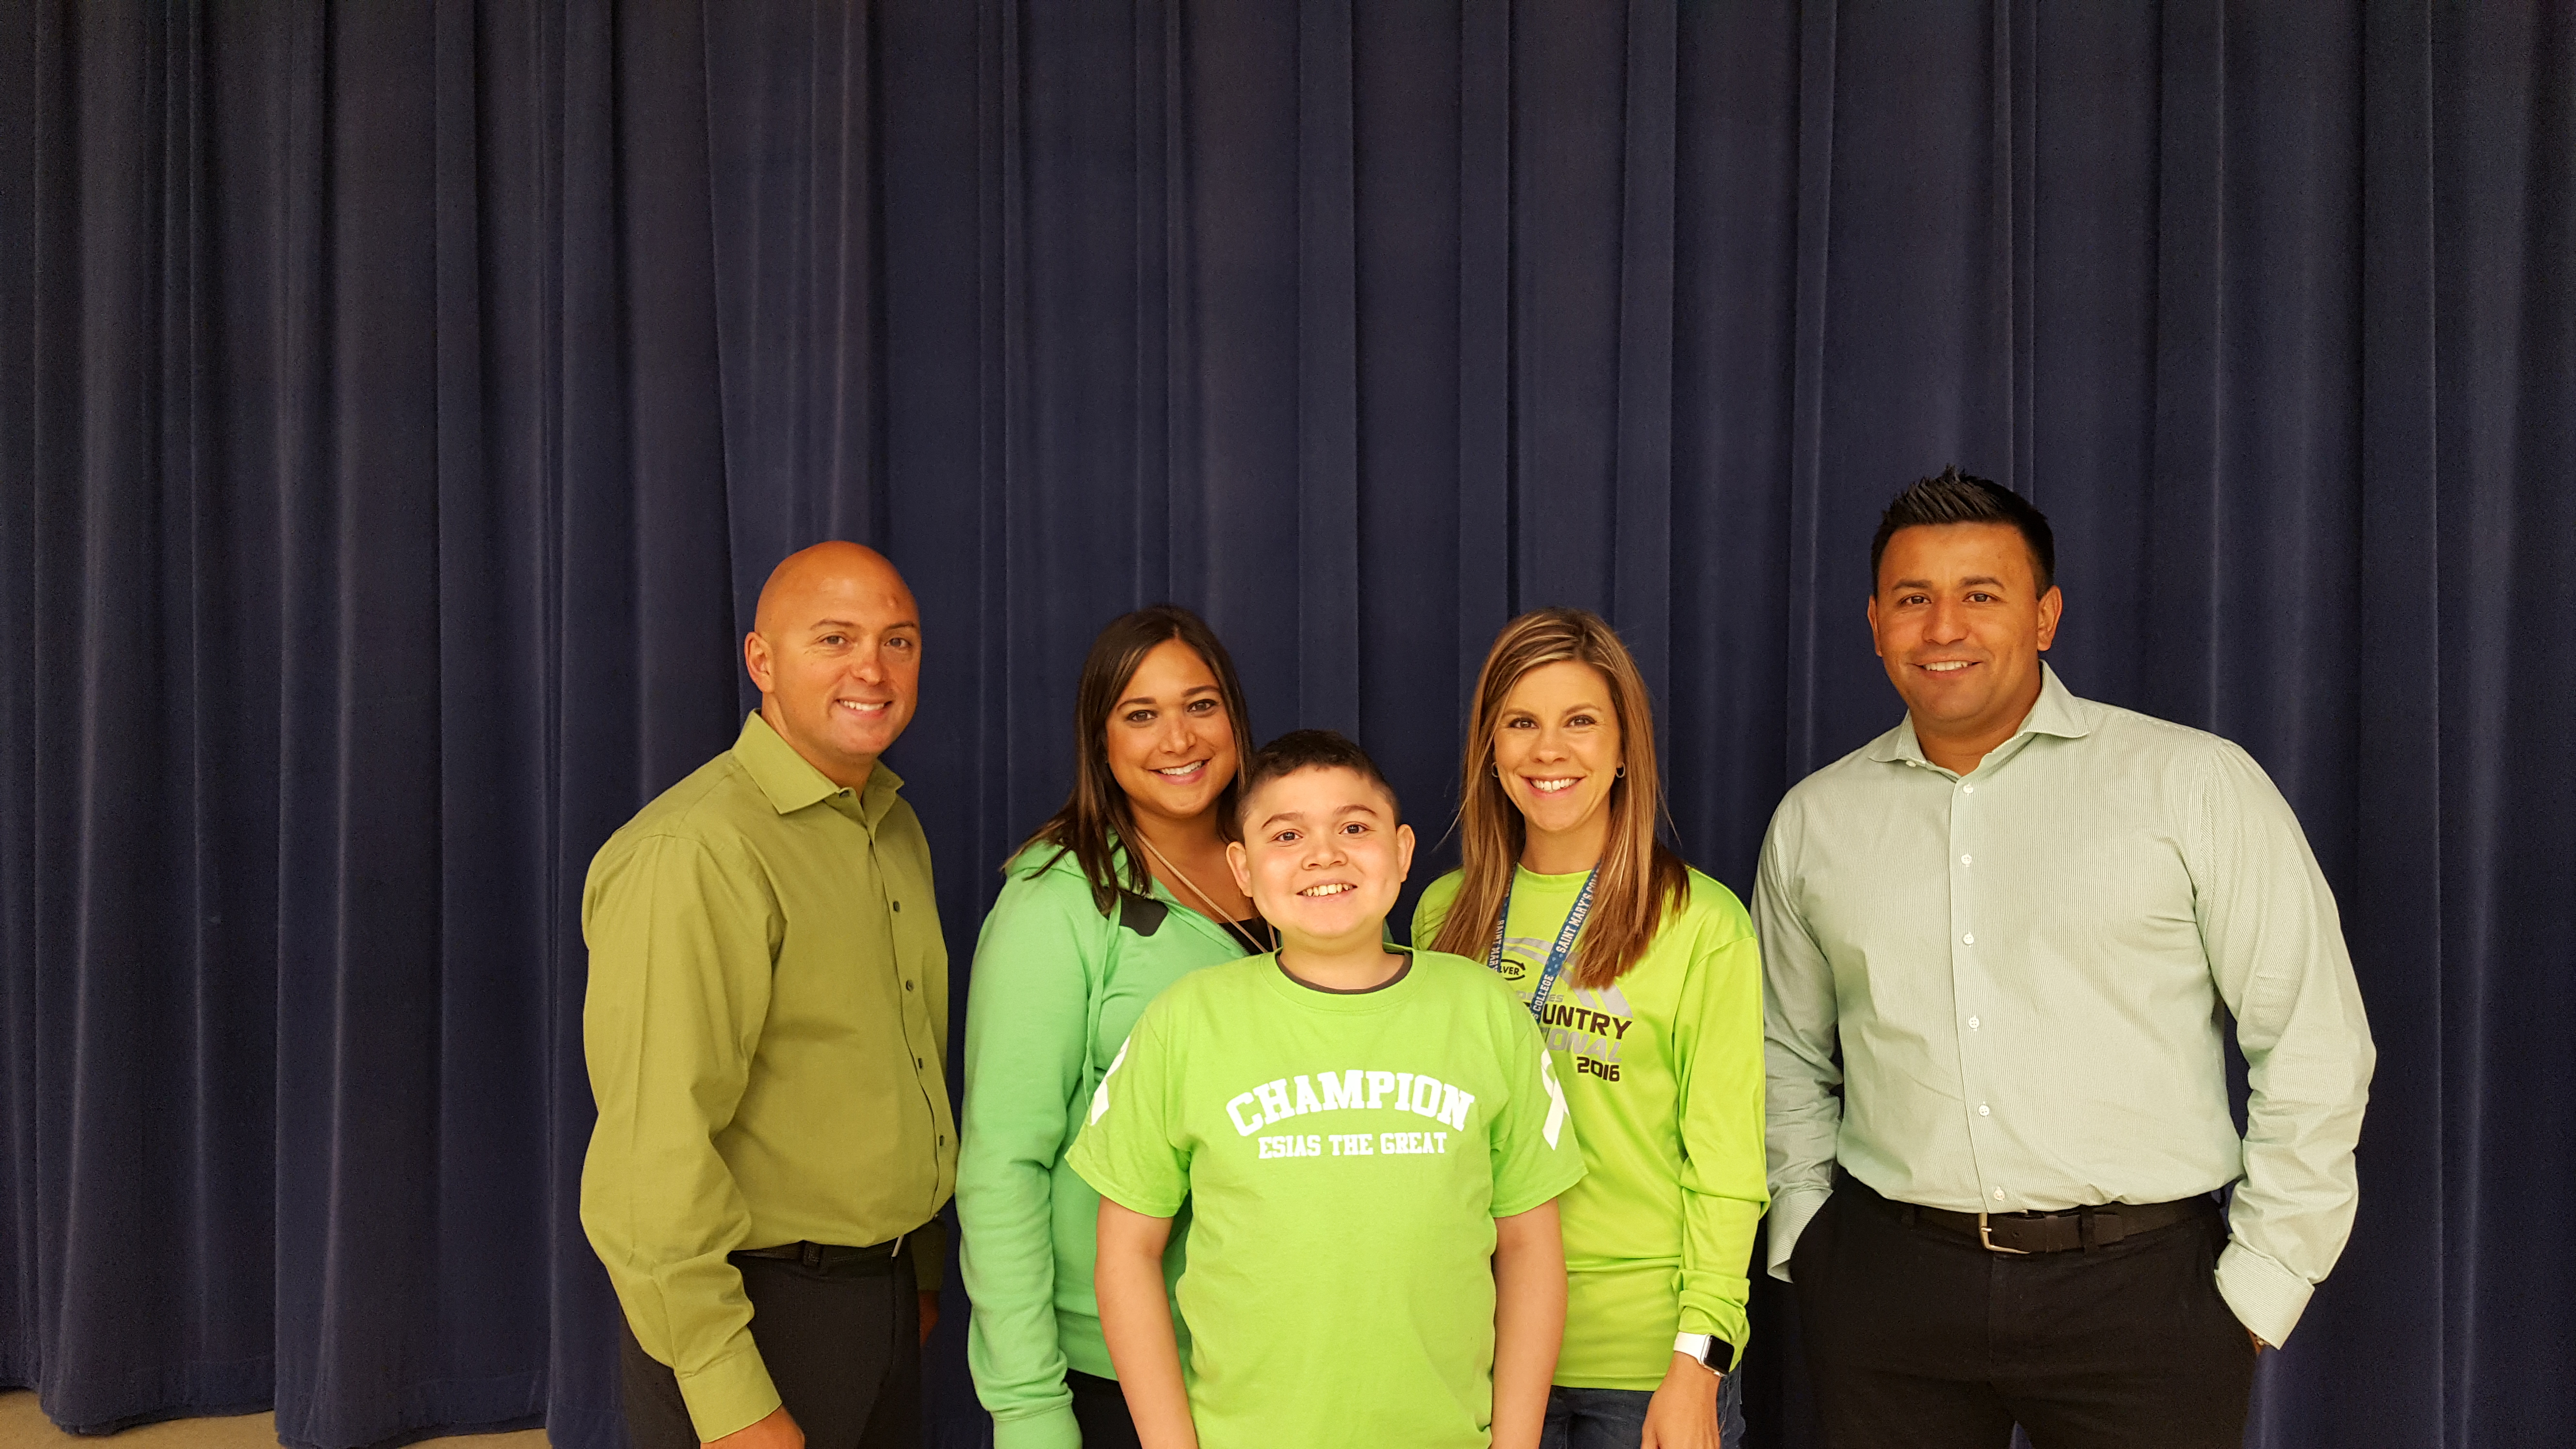 On September 7th, Grimmer students and staff honored World Duchenne Muscular Dystrophy Awareness Day by wearing green. Pictured with some Grimmer staff is 7th grade student Esias Santiago, who is bravely battling the disease.